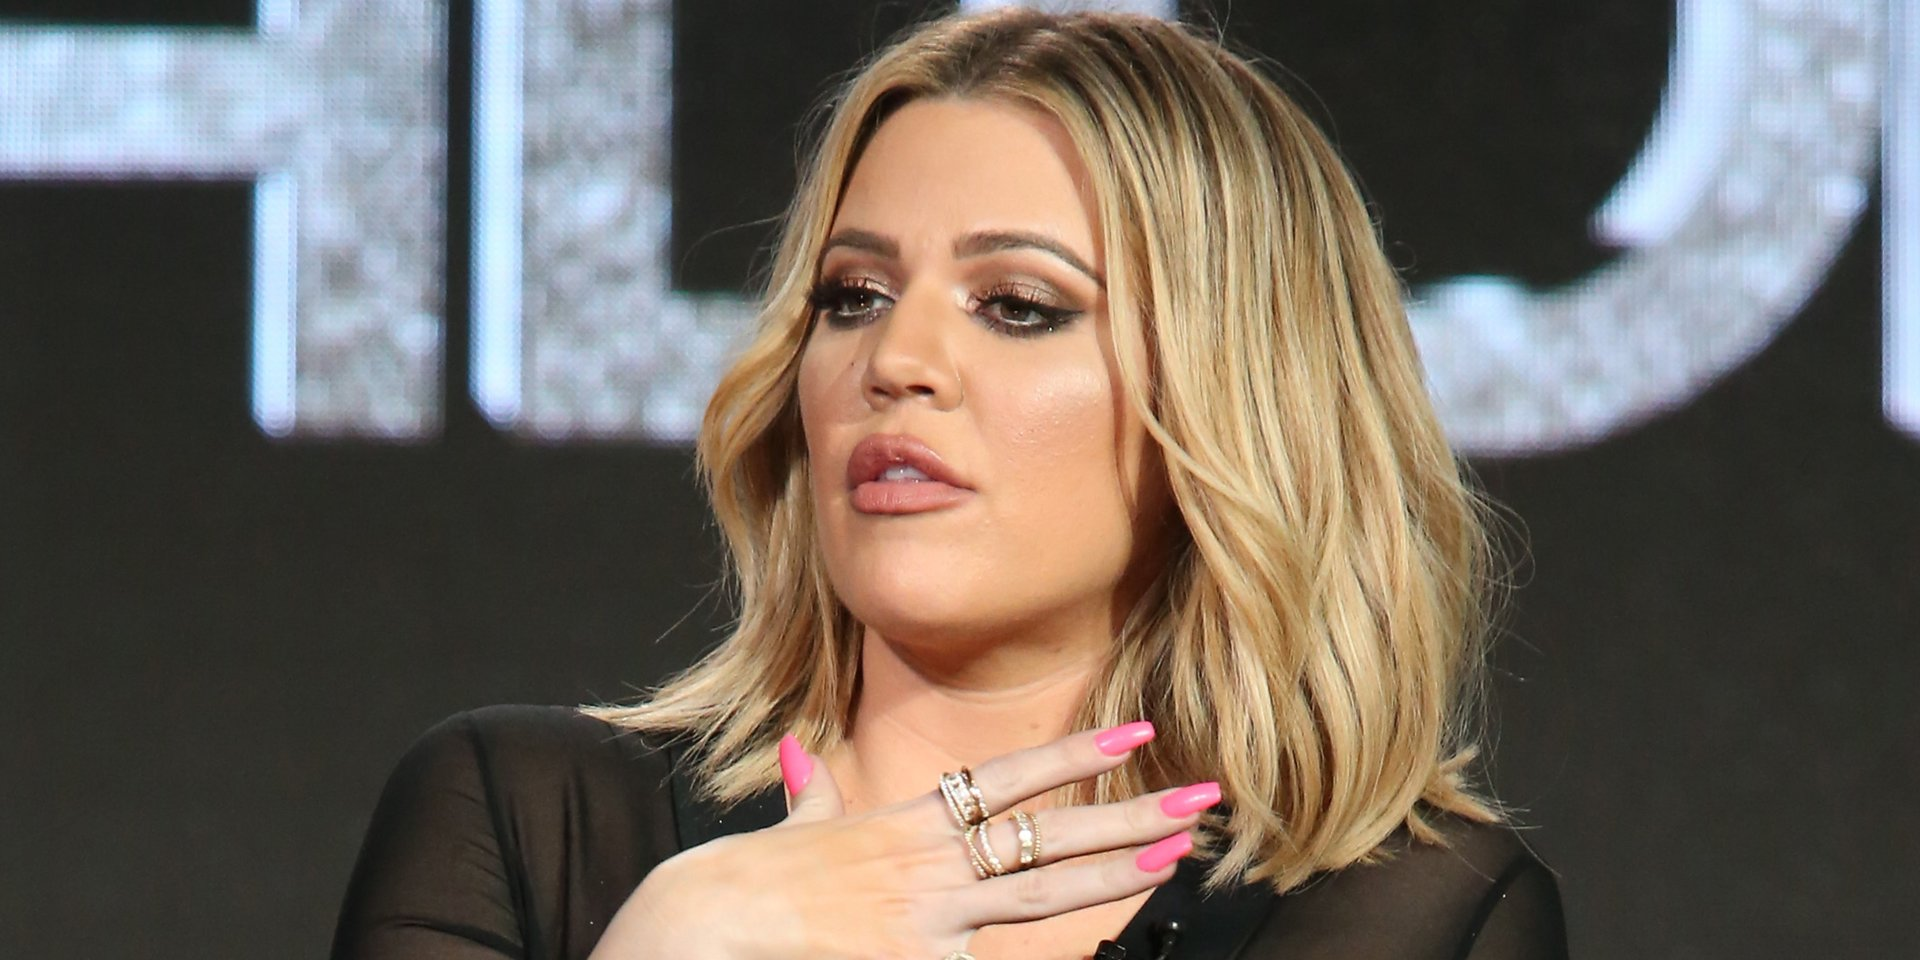 Khloe Kardashian Is Reportedly Devastated That Tristan Thompson Did Not Fight For Her